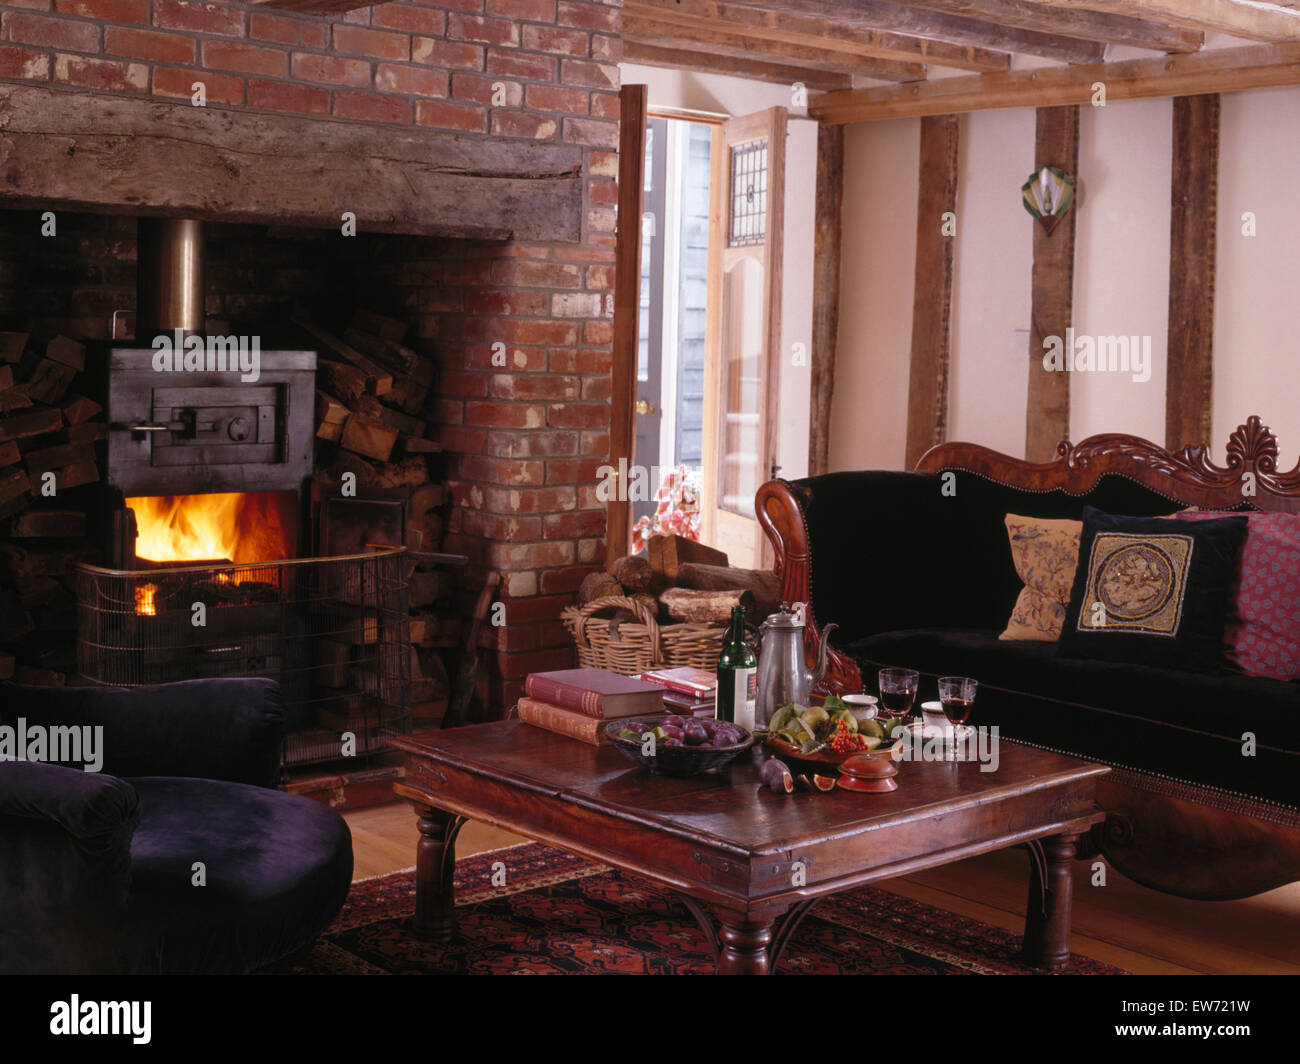 wood burning stove in inglenook fireplace in very traditional